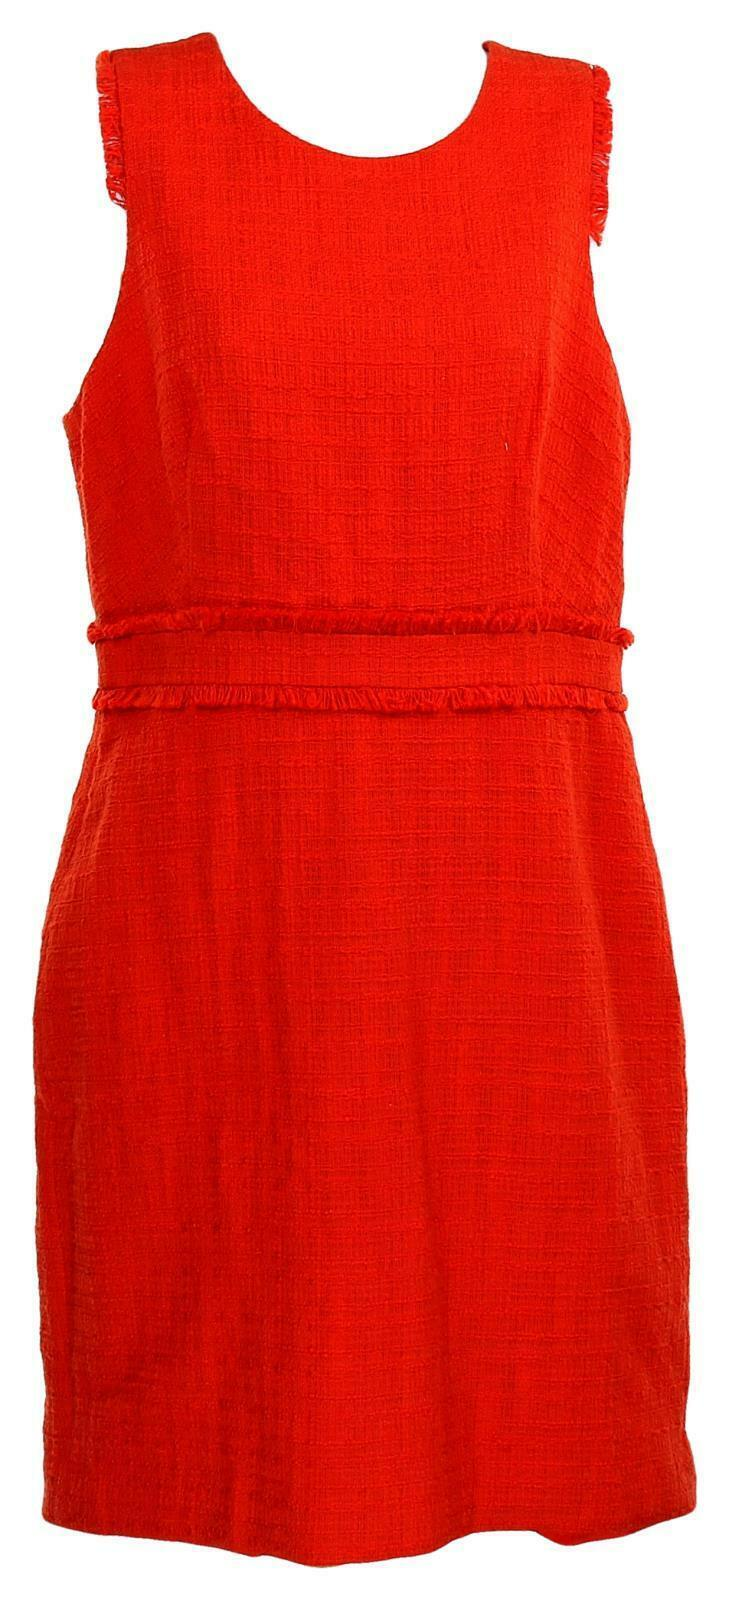 Primary image for J Crew Women's Sleeveless Sheath Dress Tweed Suiting Career Work Red 8 H7911